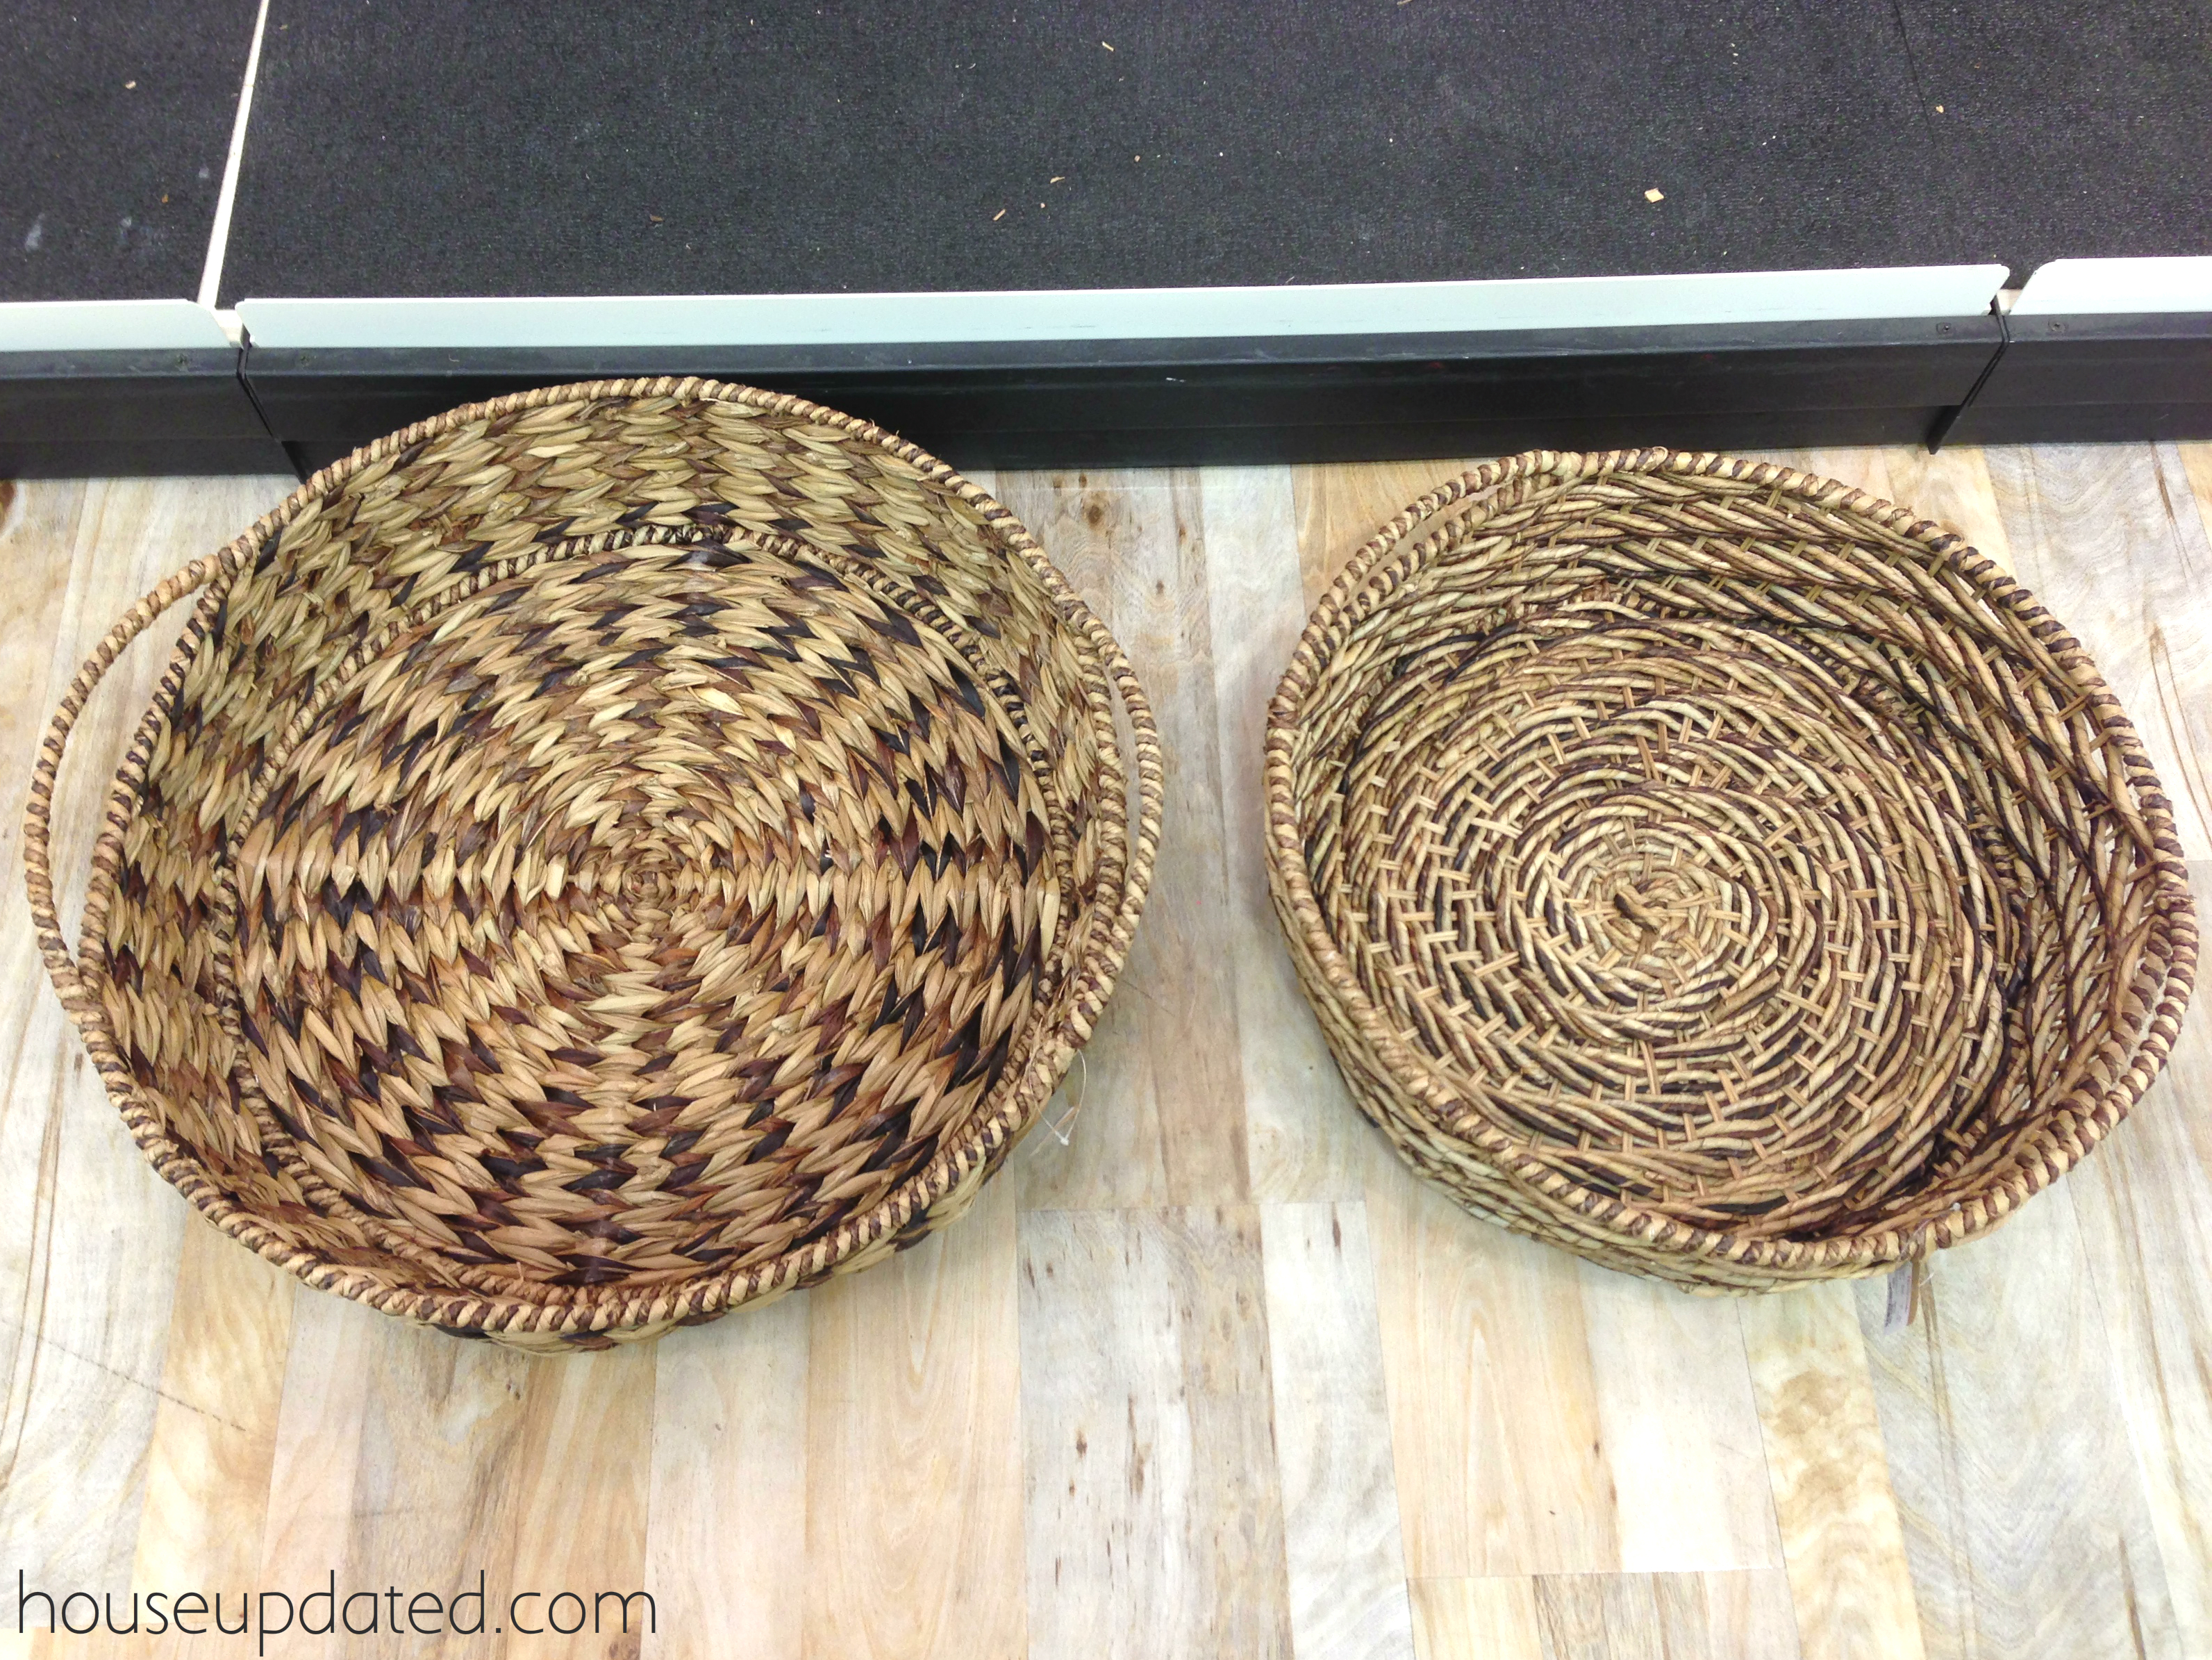 basket2 & The Story of a Large Shallow Basket - House Updated